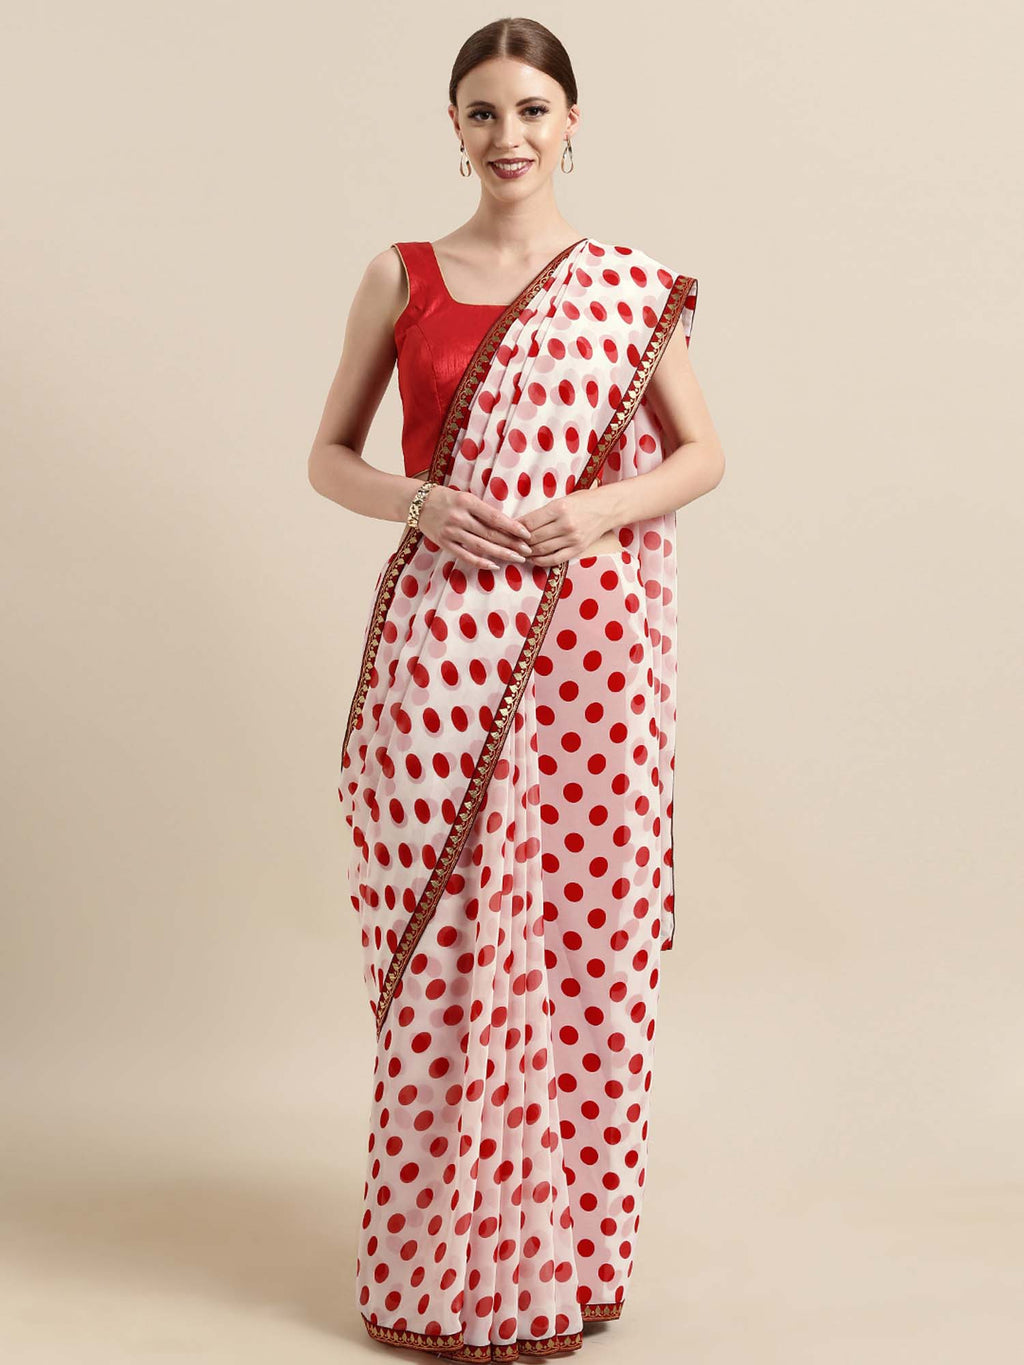 White and Red Poly Georgette Polka Dots Print with Printed Lace and Solid Dupion Blouse - Riviera Closet